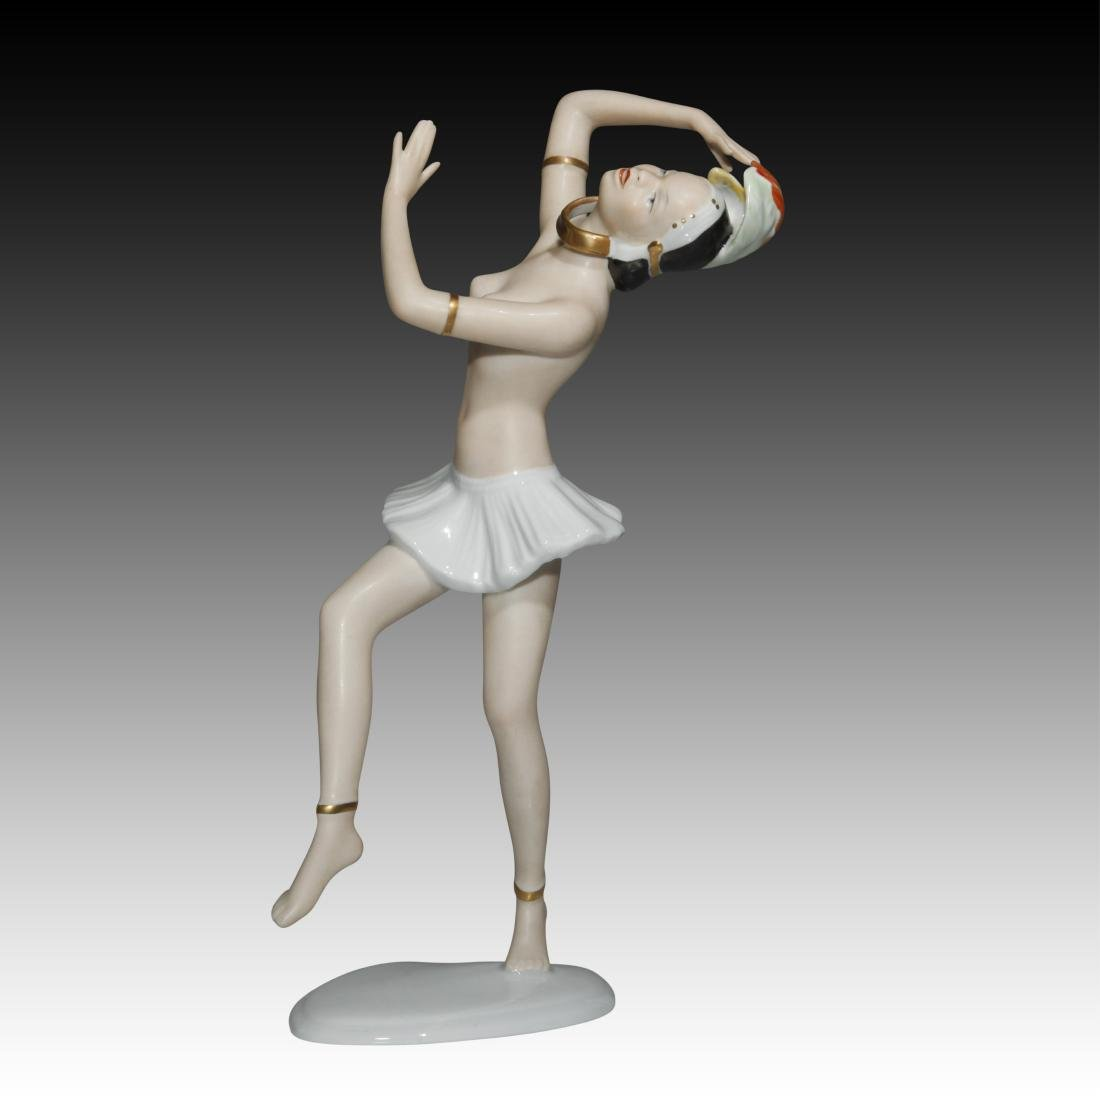 Wallendorf Semi-nude Dancer Figurine - 2